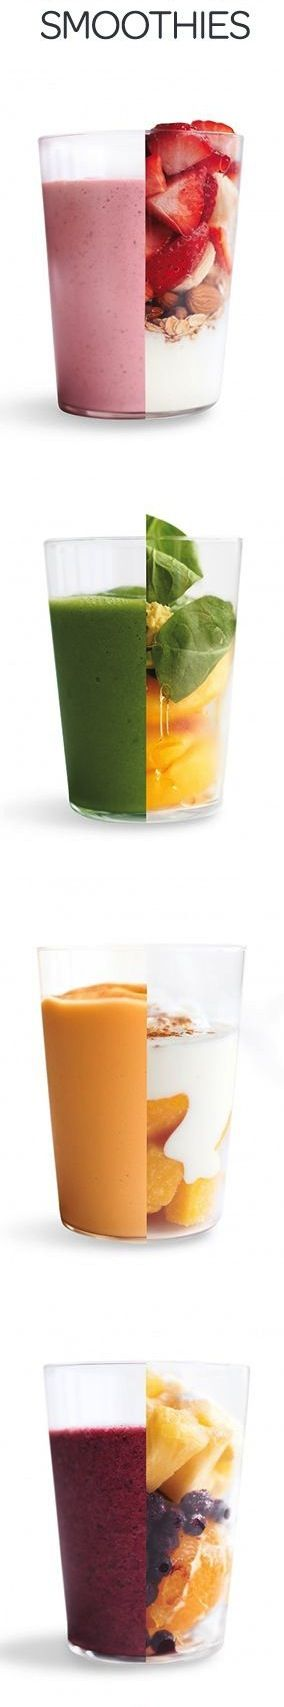 Add fruit, fiber & vitamins to your diet with the 200+ smoothie recipe app! #Smoothies